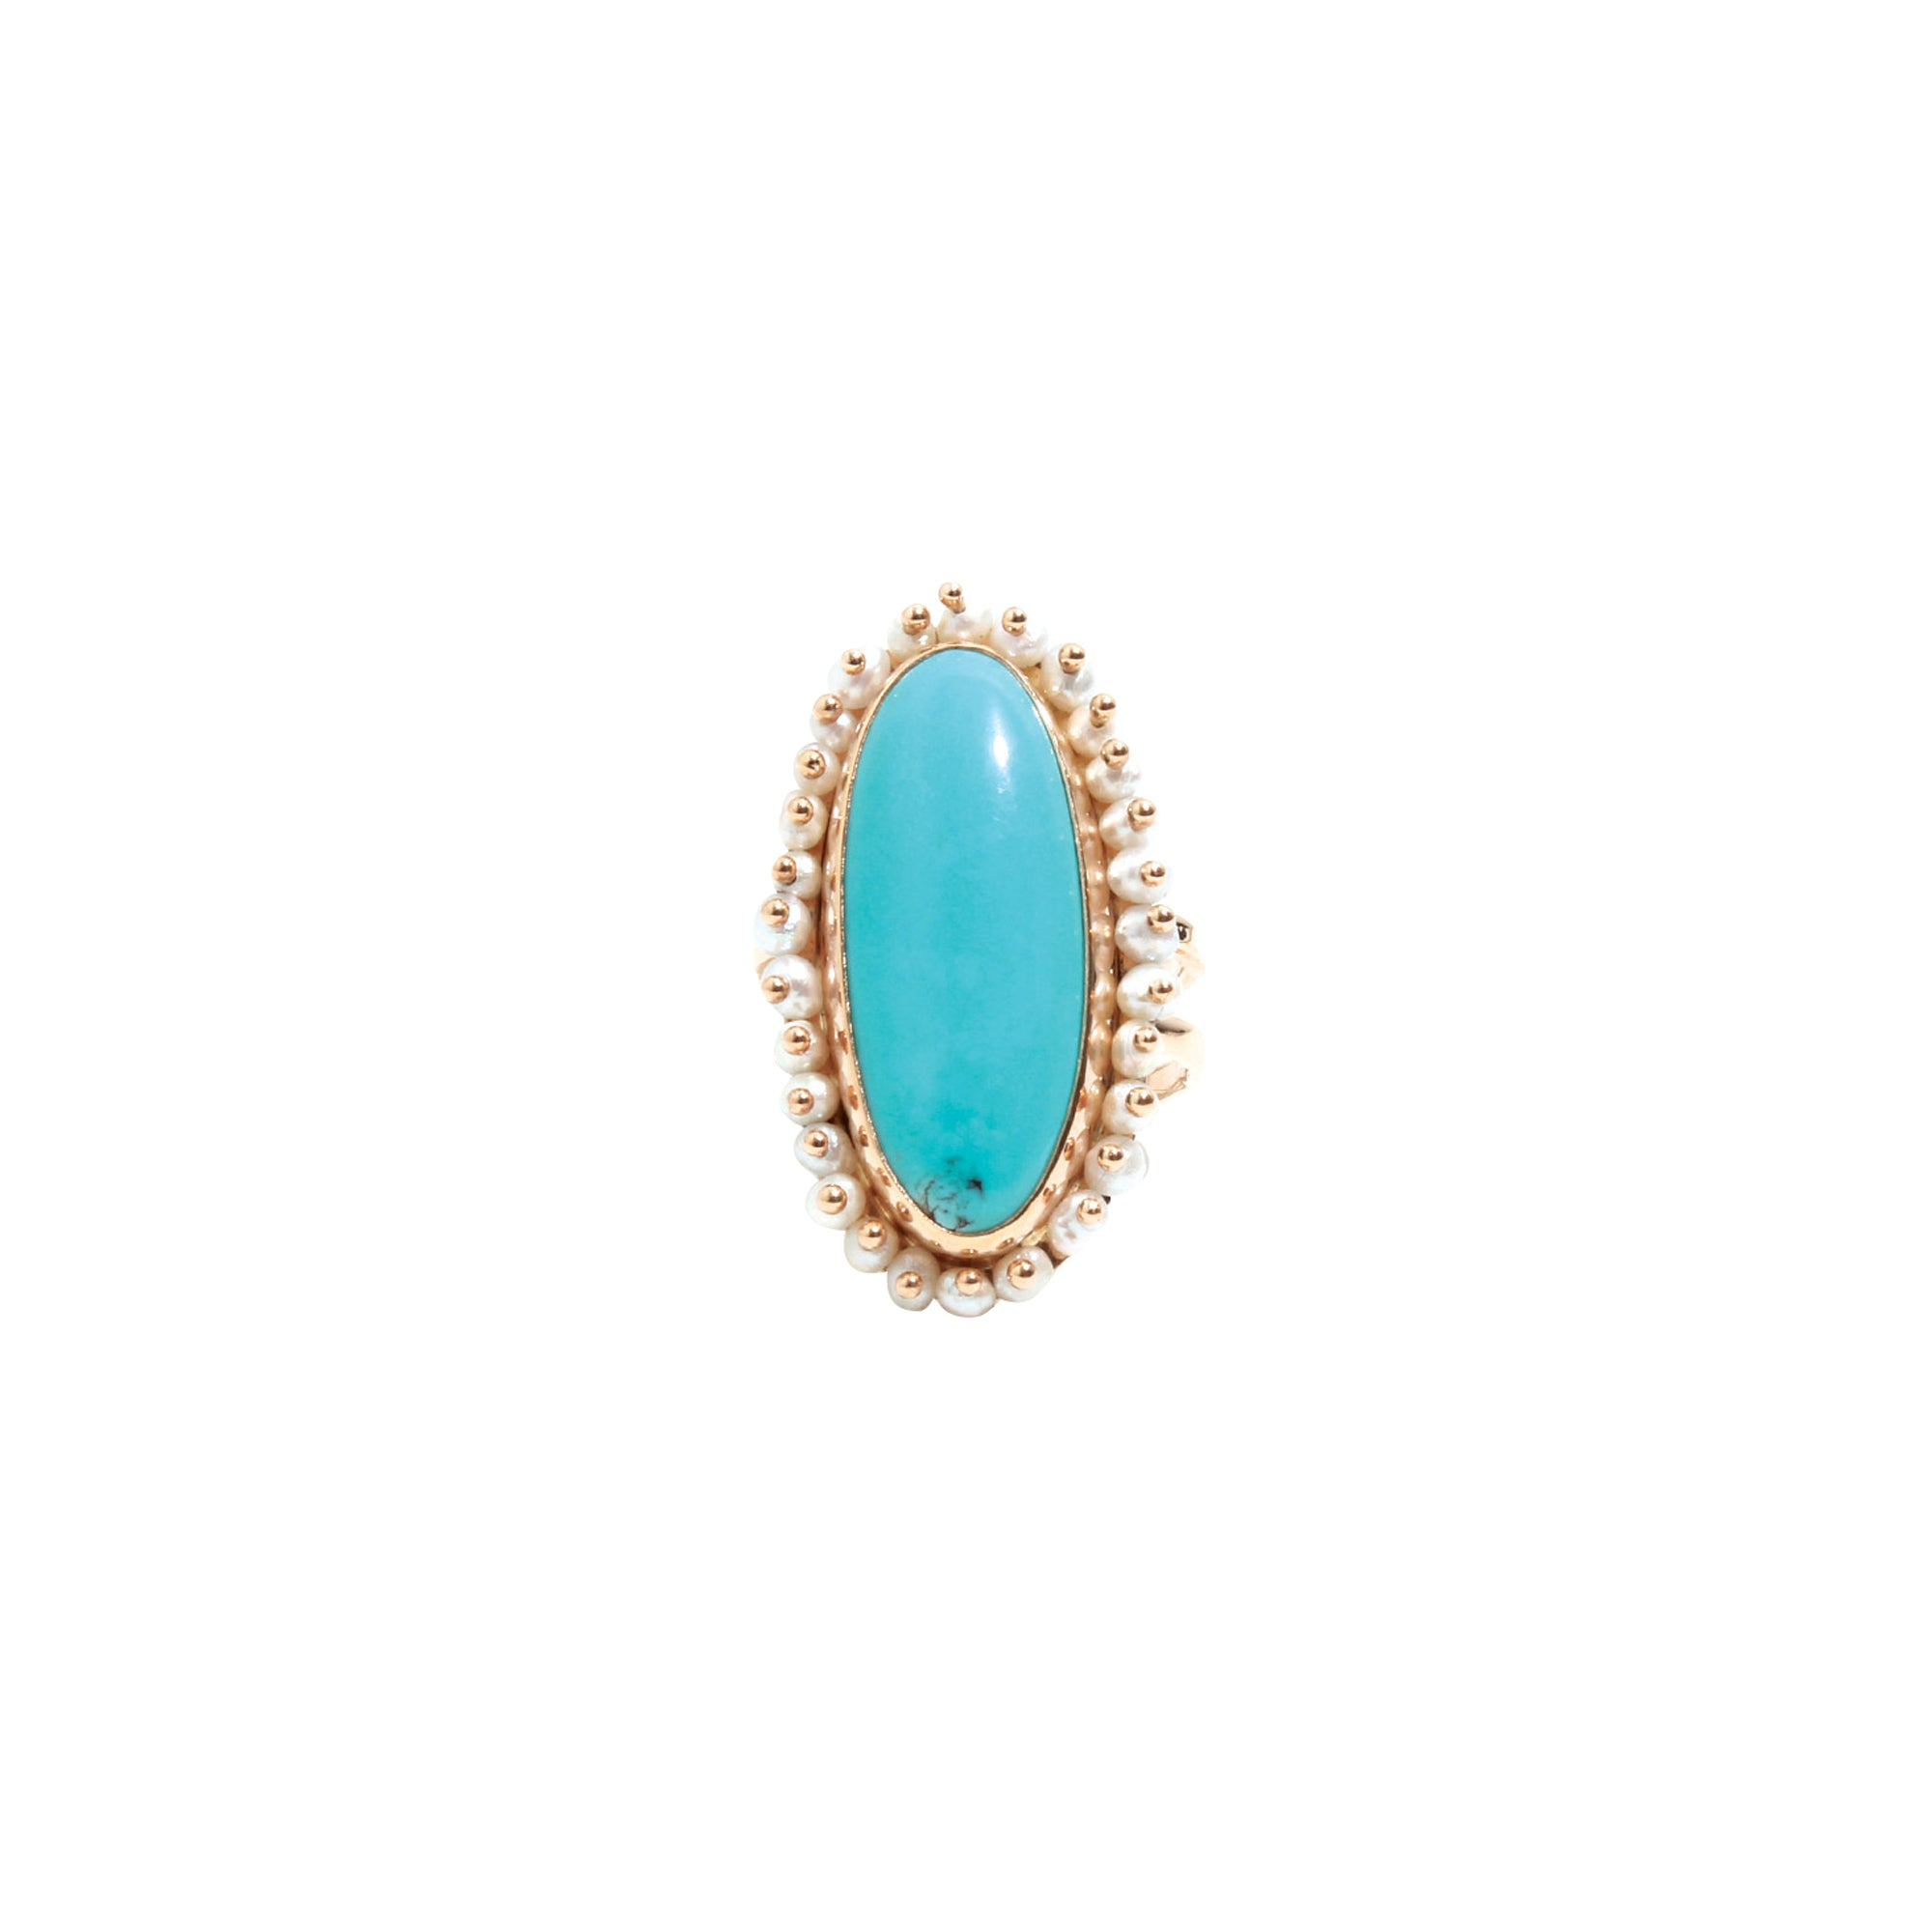 Melissa Joy Manning Oval Ring - Turquoise & Pearls - Rings - Broken English Jewelry